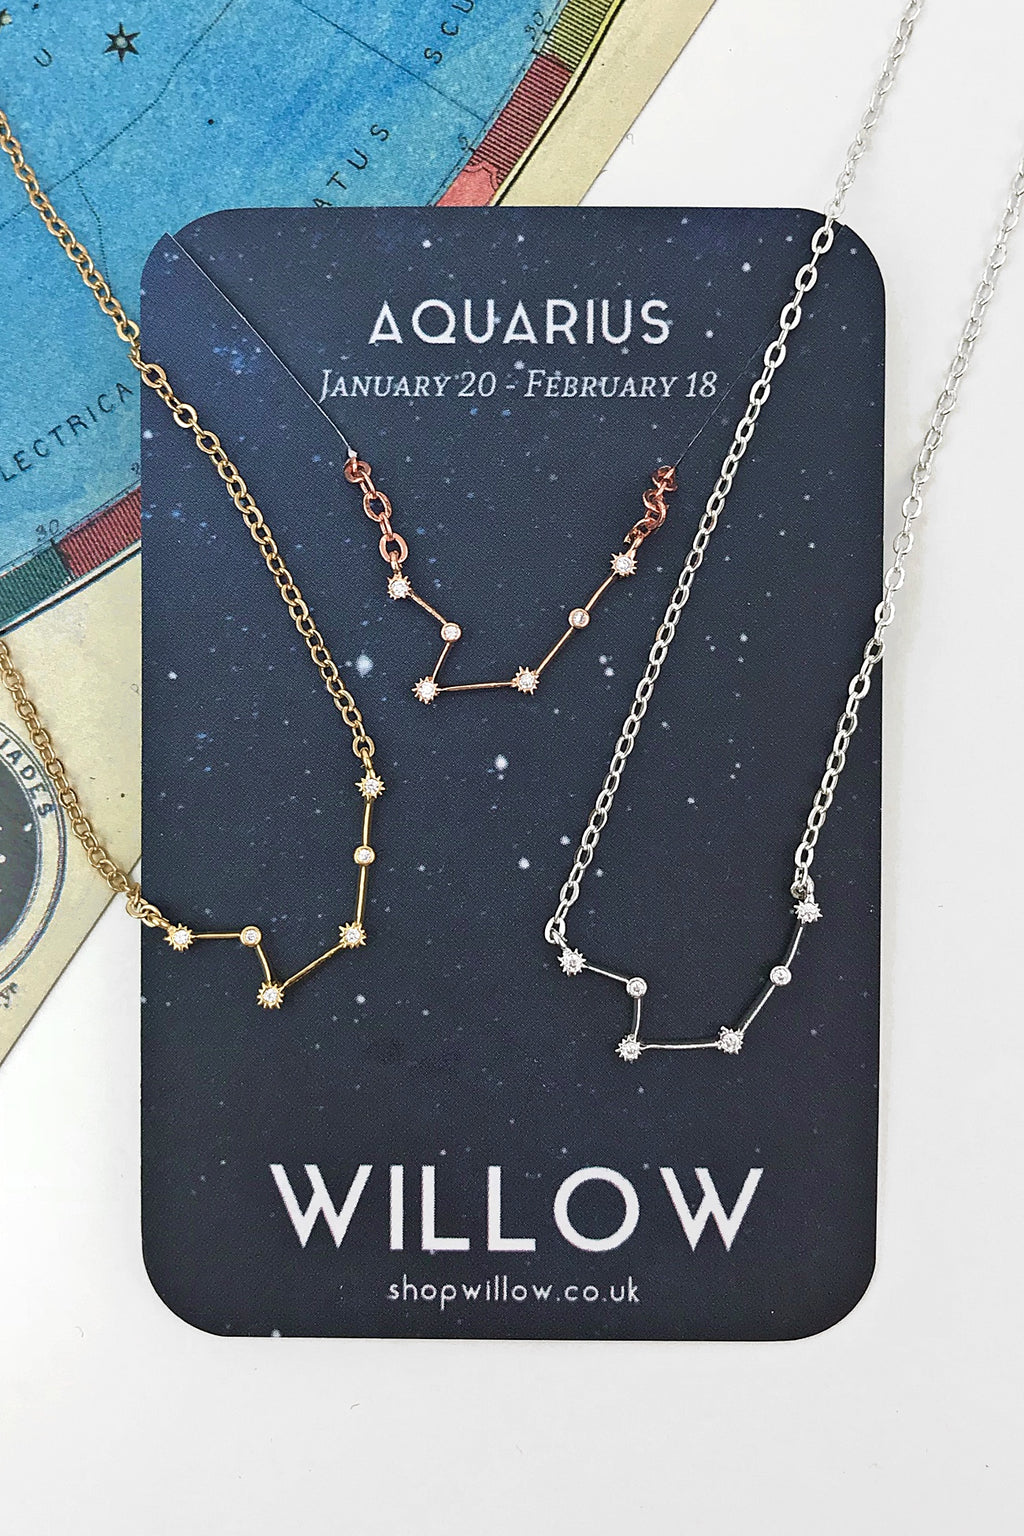 Aquarius mini constellation necklace